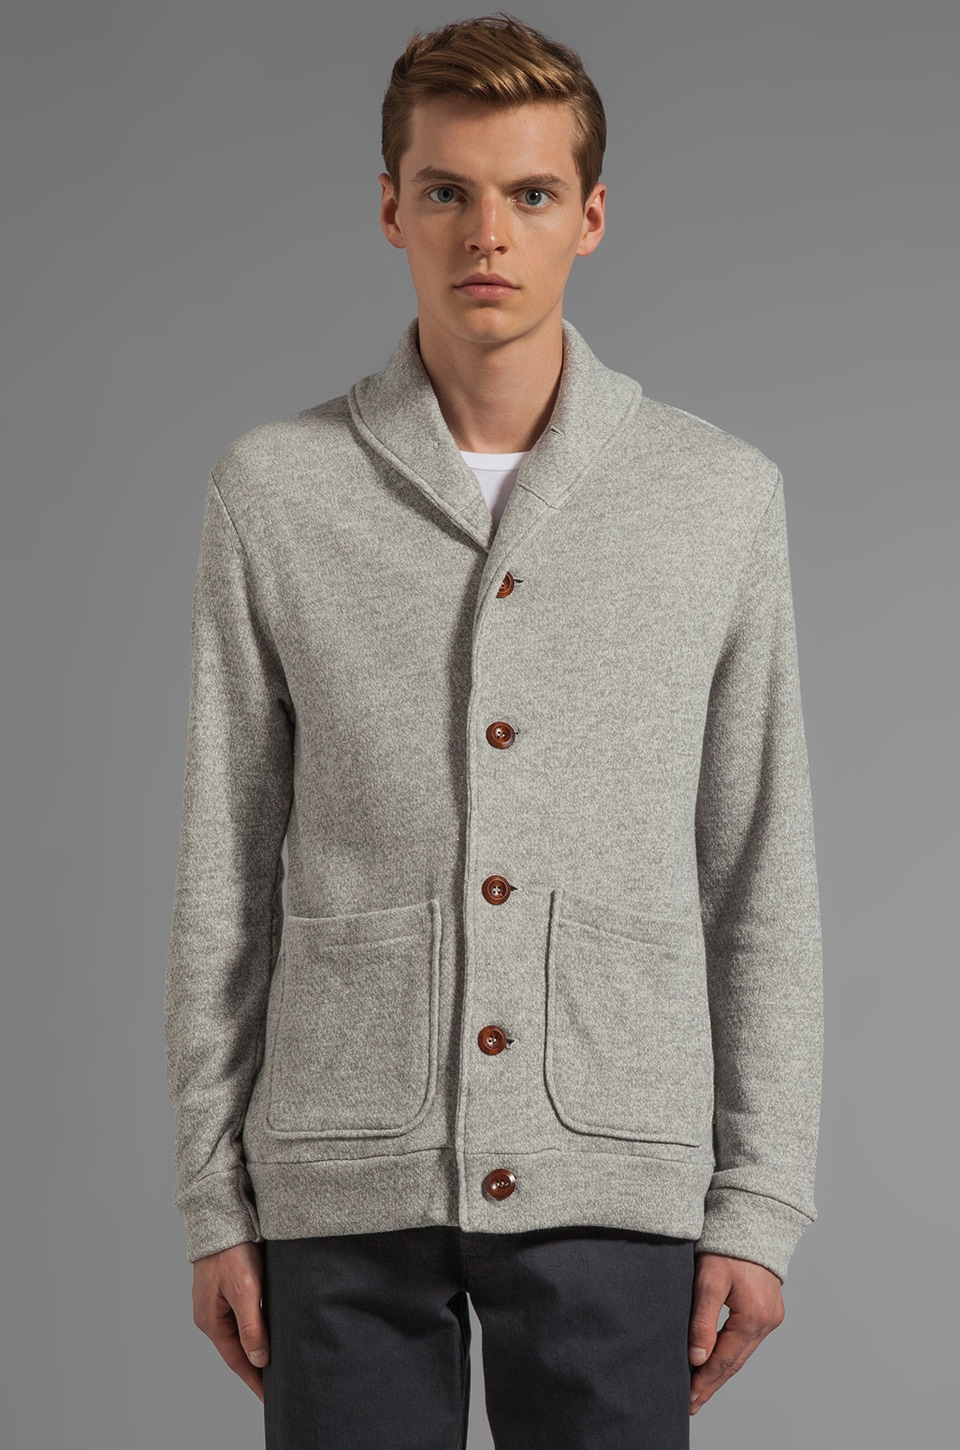 Obey Bowen Heavyweight Cardigan in Heather Grey